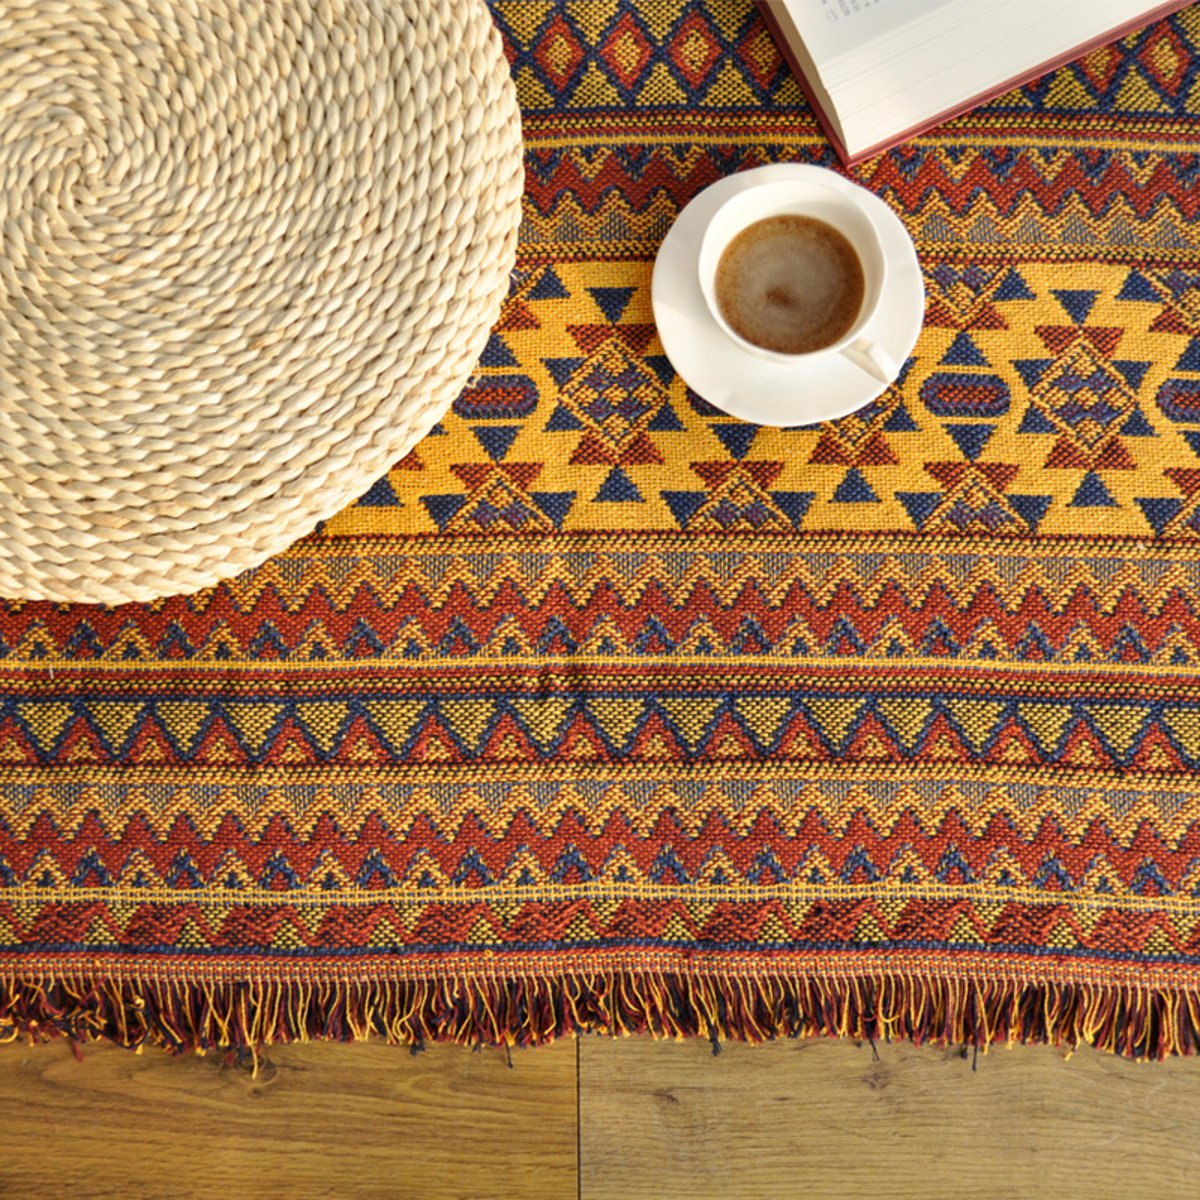 Cotton Knitted Blankets Throw Tribal Bohemian Ethnic Sofa Bedding Home Decor